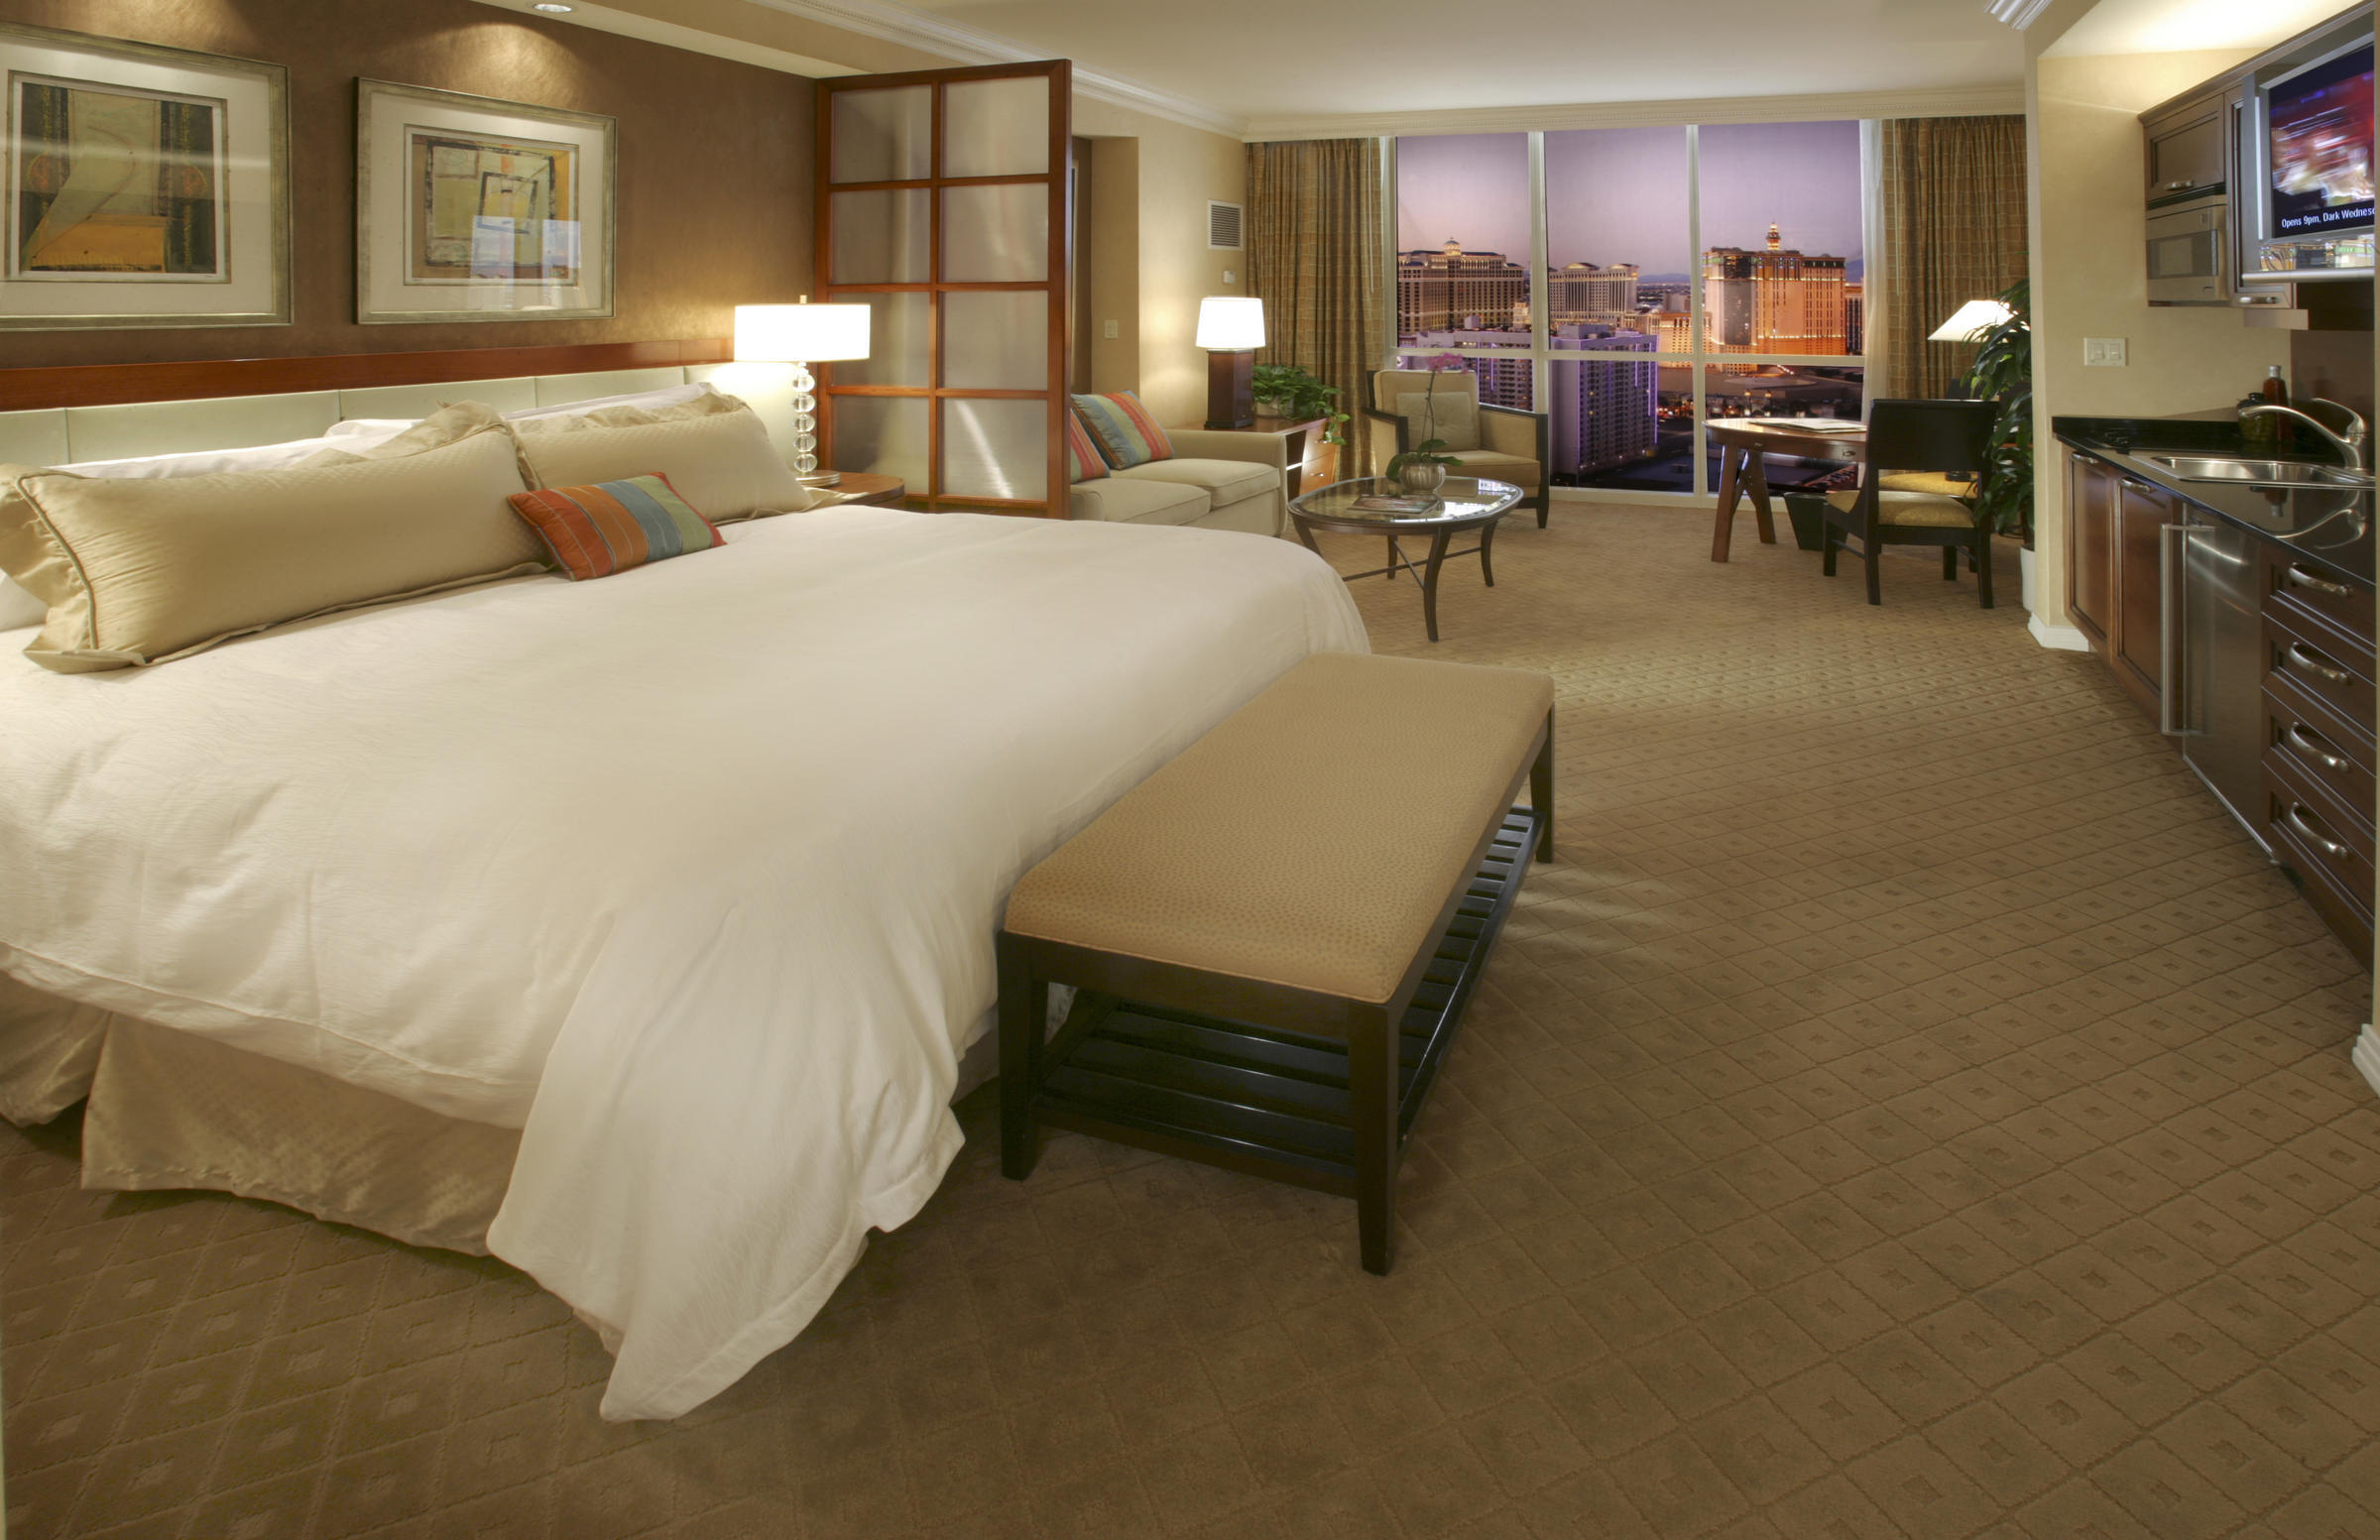 Las vegas for brits signature at mgm grand - Mgm signature one bedroom balcony suite ...